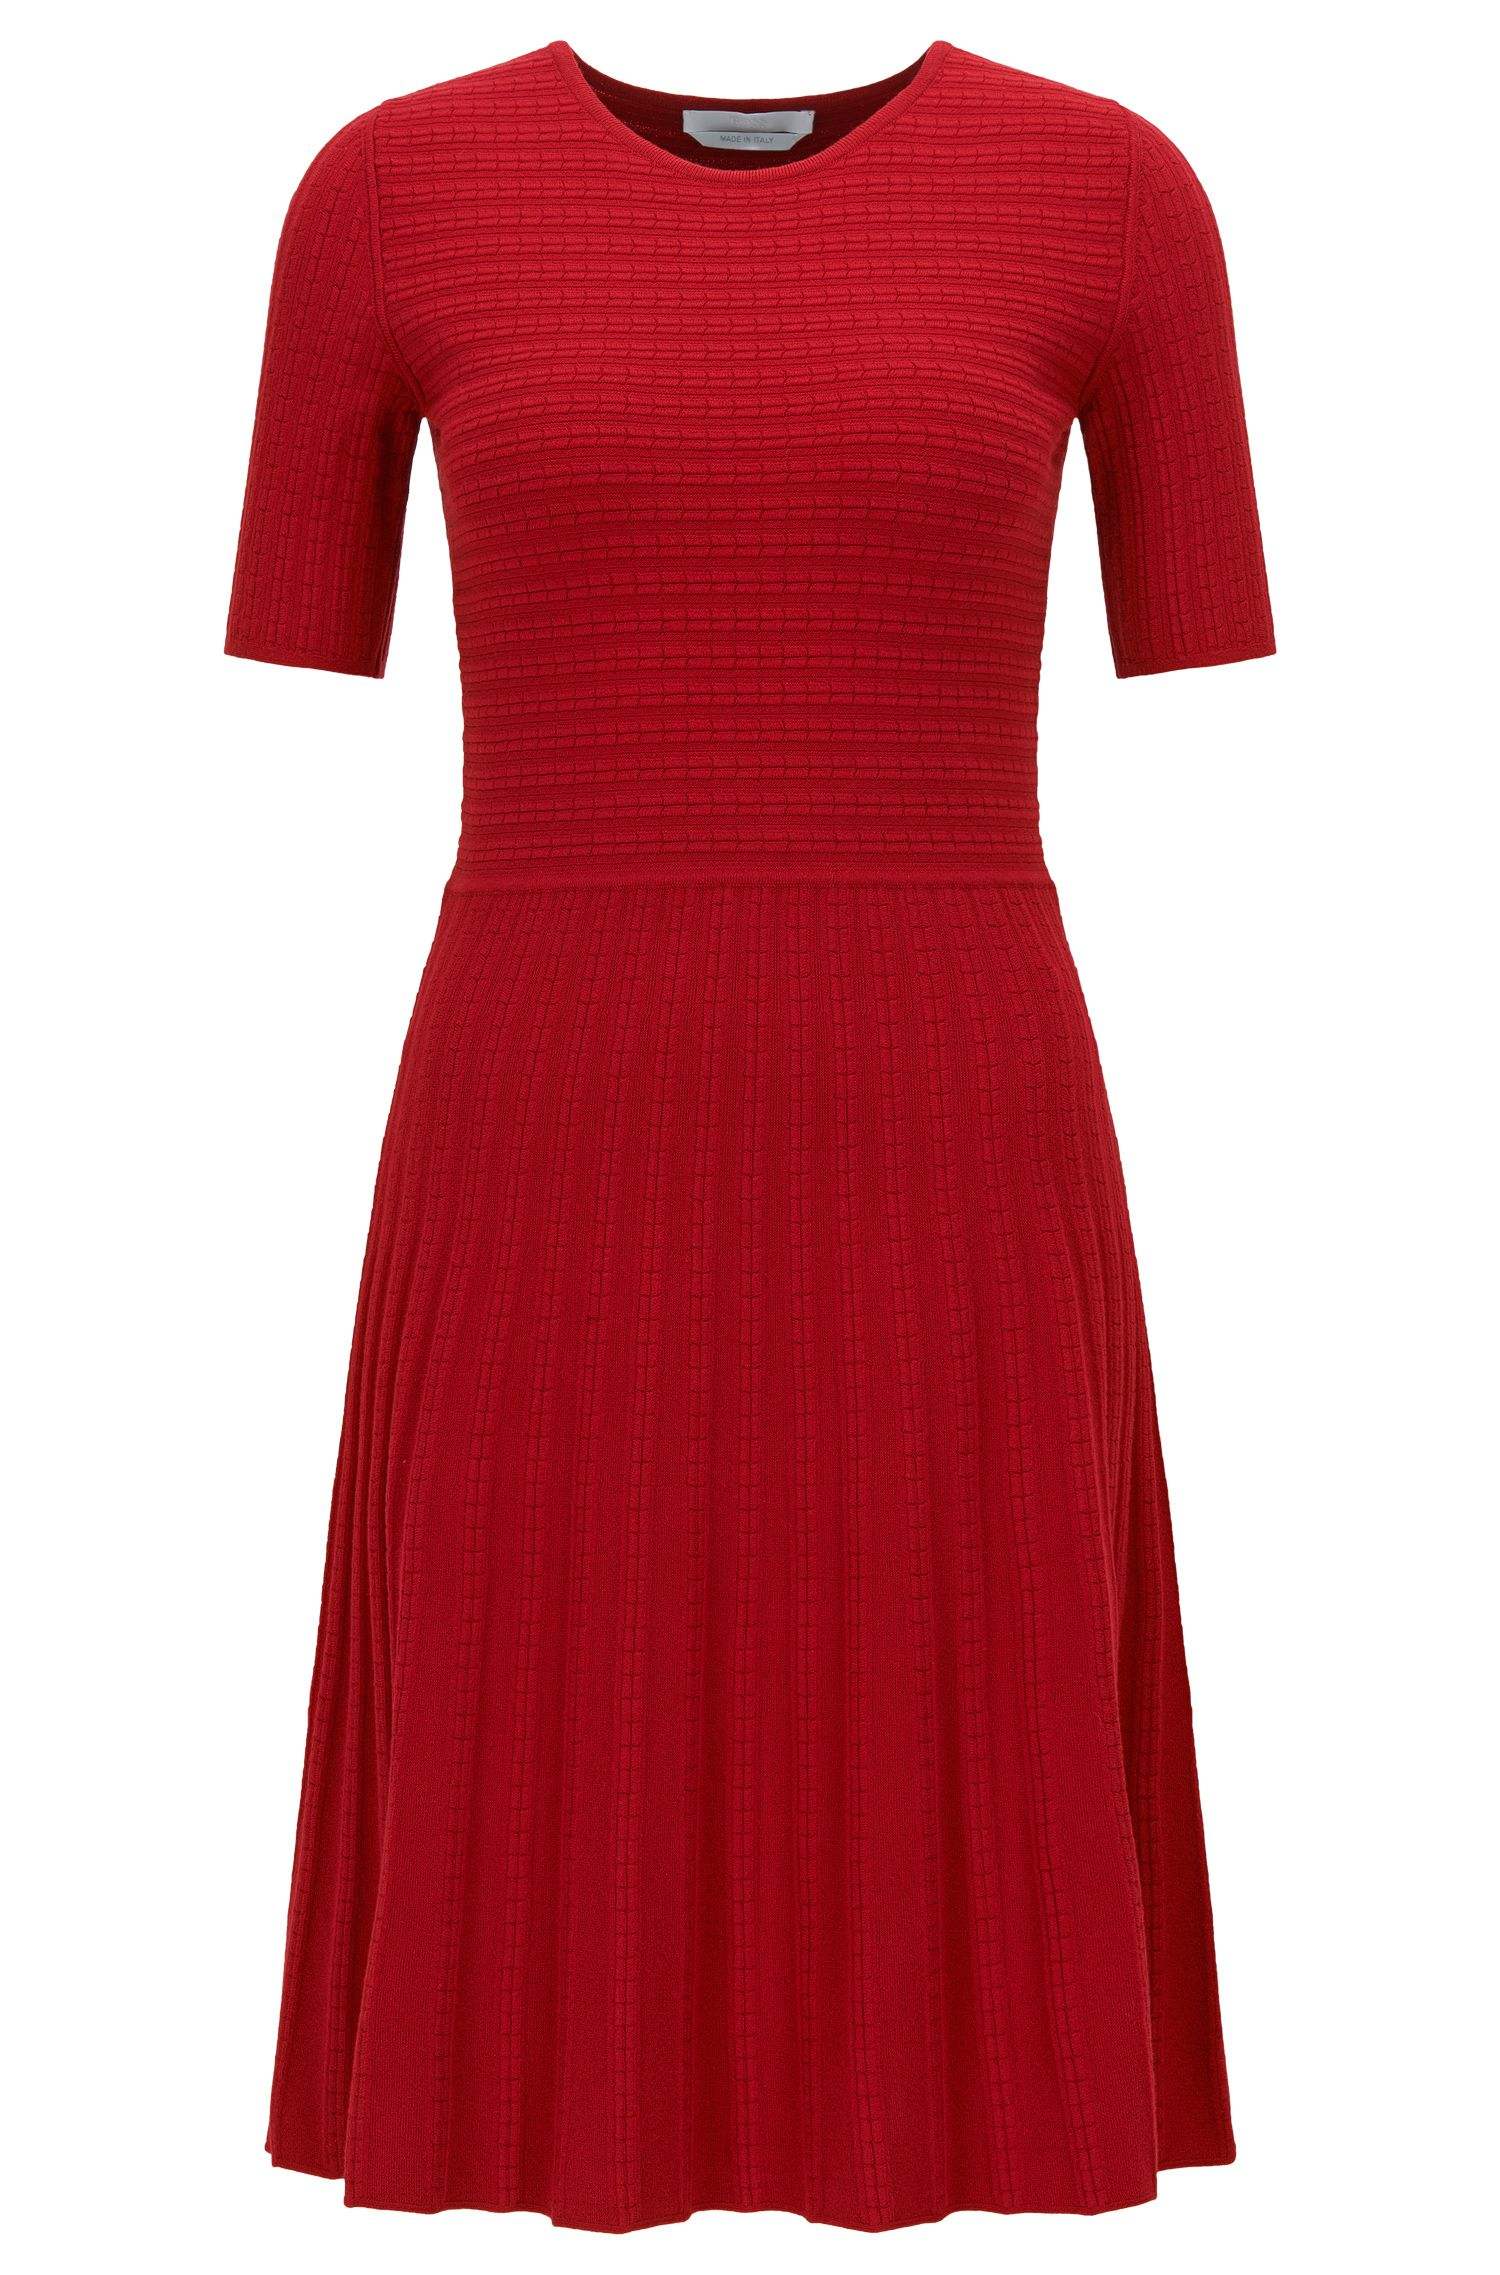 A-line dress in Italian stretch fabric